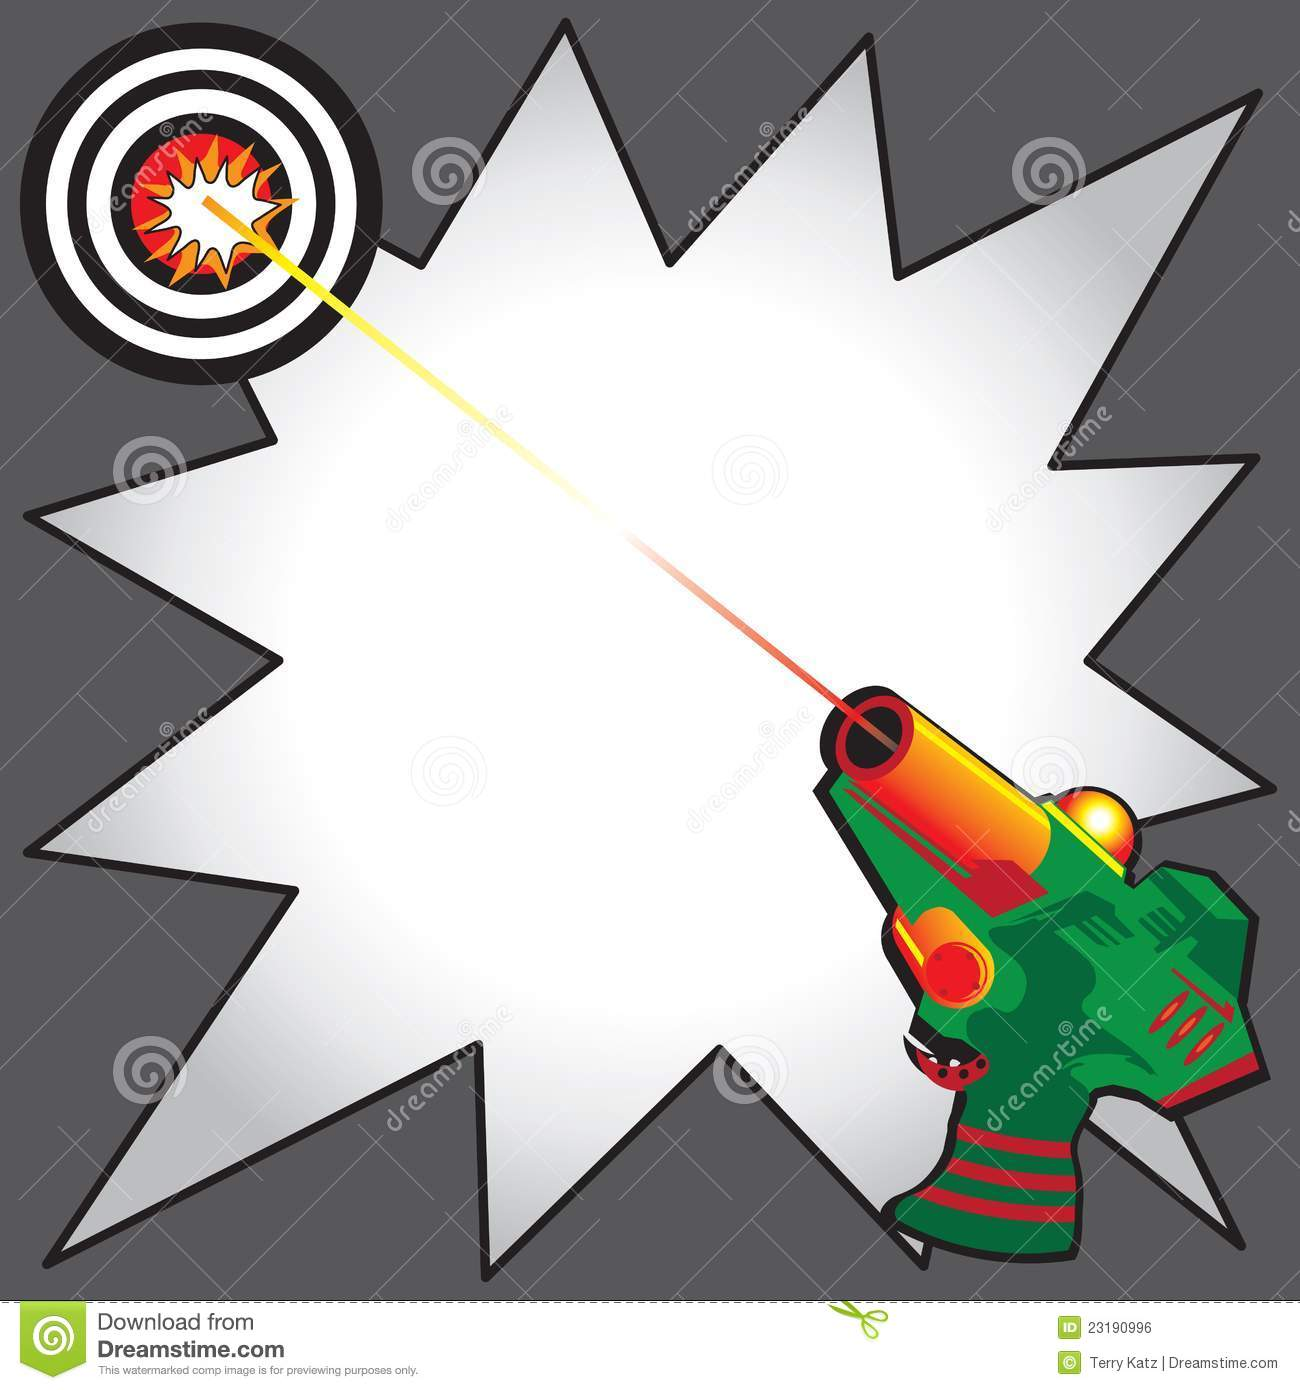 Laser Tag Clipart